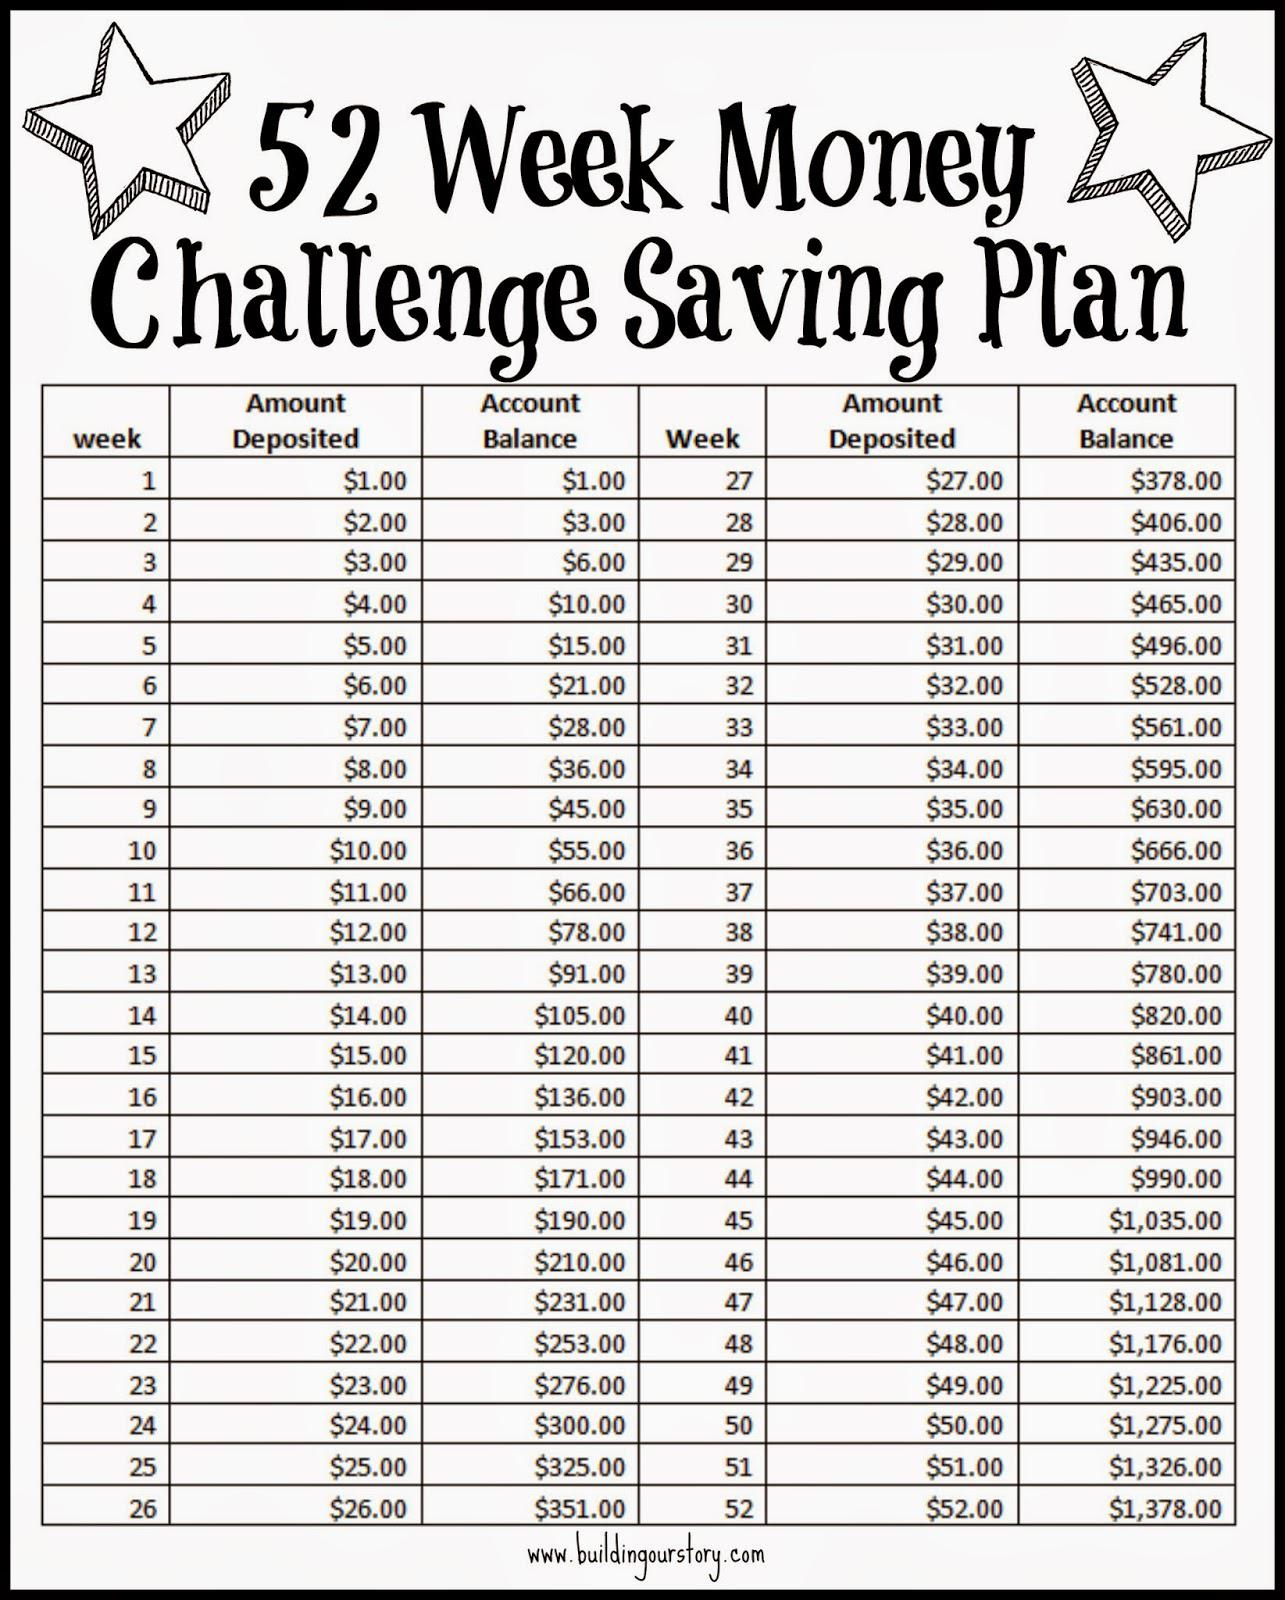 censie on twitter 52 week money challenge saving plan free printable end 2015 with close to. Black Bedroom Furniture Sets. Home Design Ideas